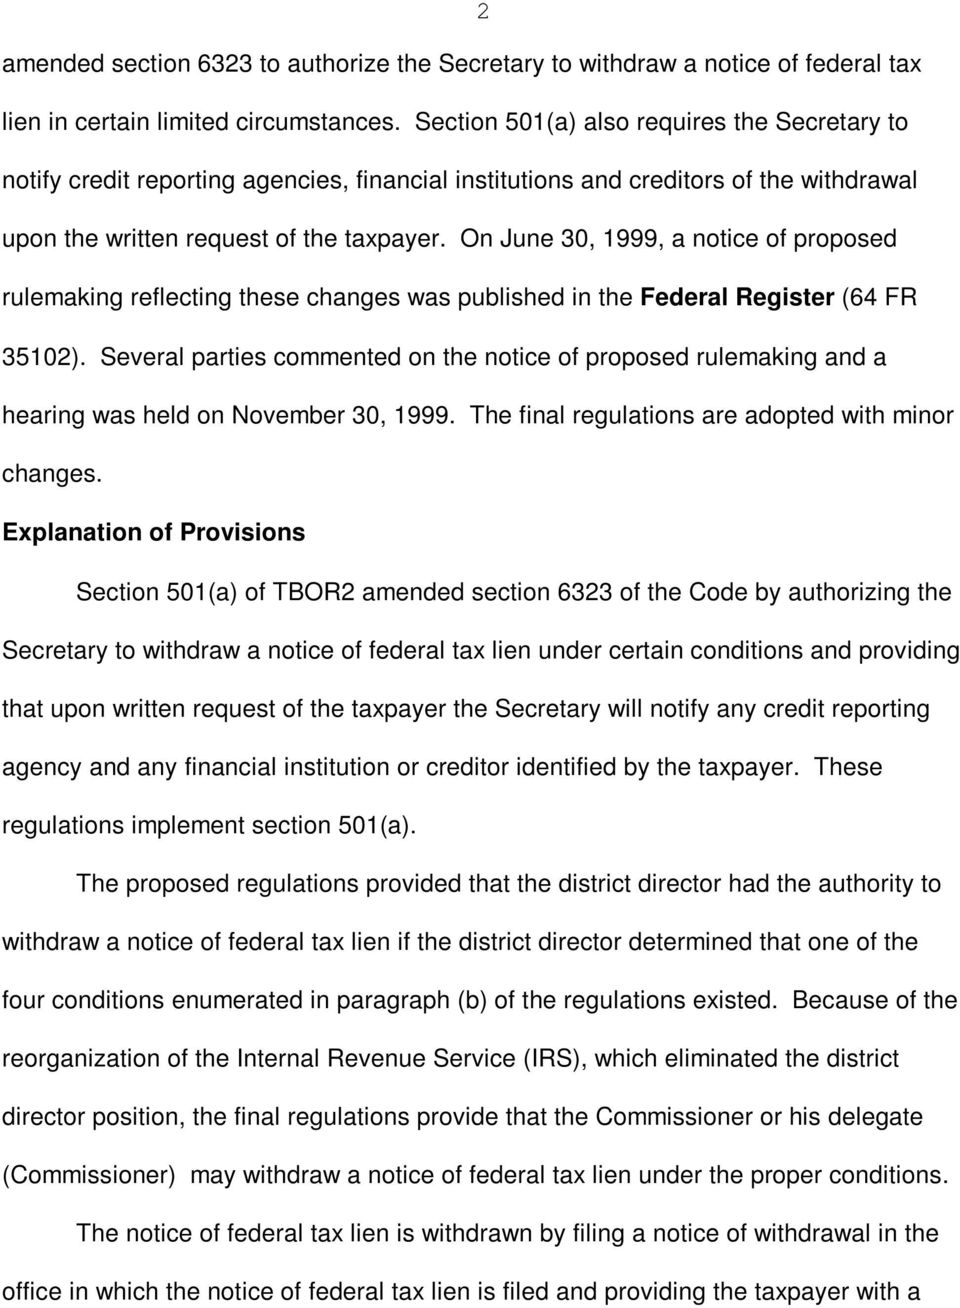 On June 30, 1999, a notice of proposed rulemaking reflecting these changes was published in the Federal Register (64 FR 35102).